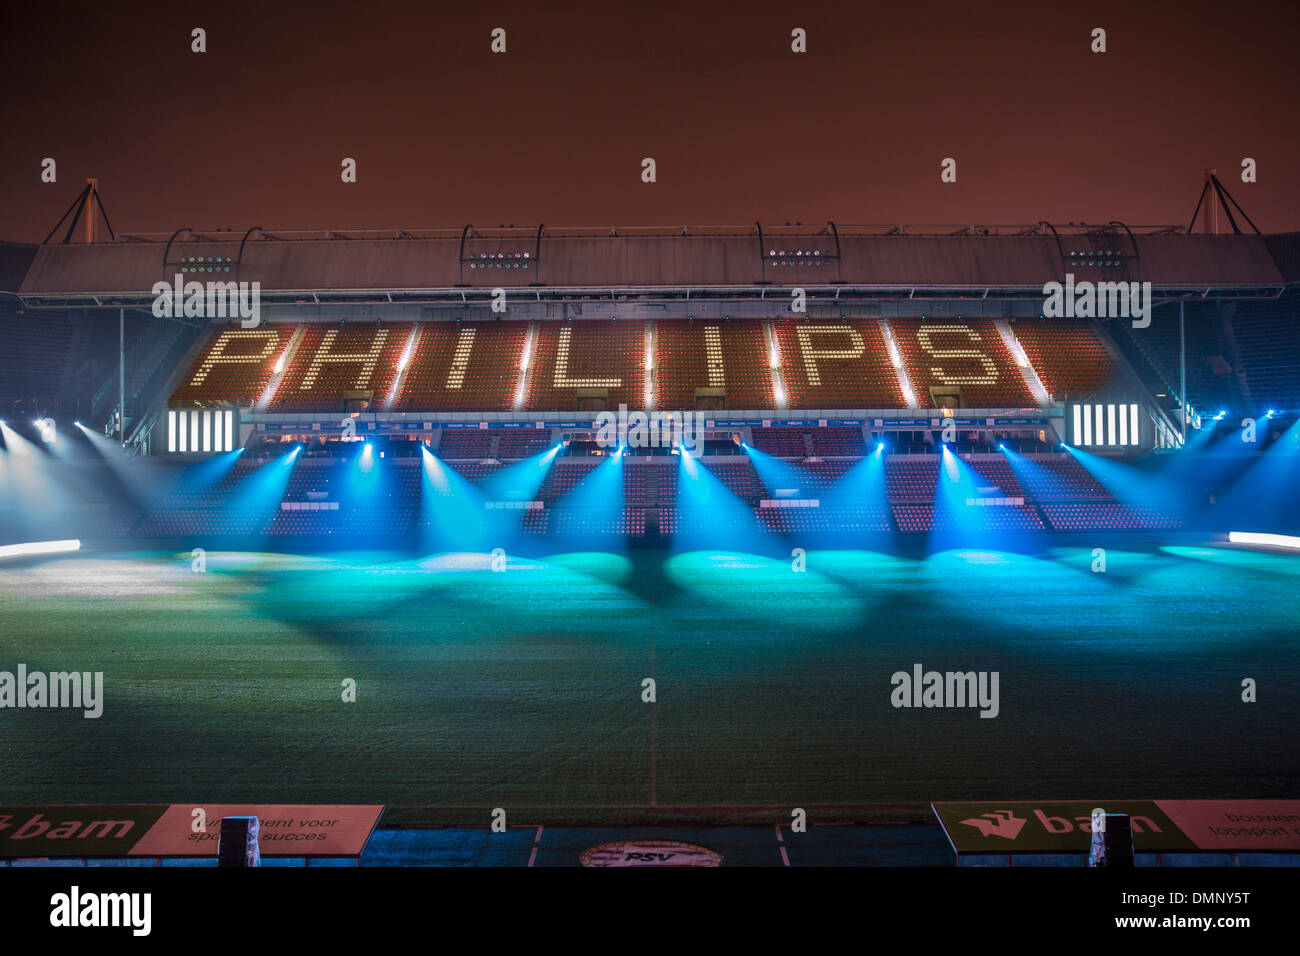 Netherlands, Eindhoven, Light festival called GLOW 2013. Project Clashlight in the Philips PSV football stadium - Stock Image